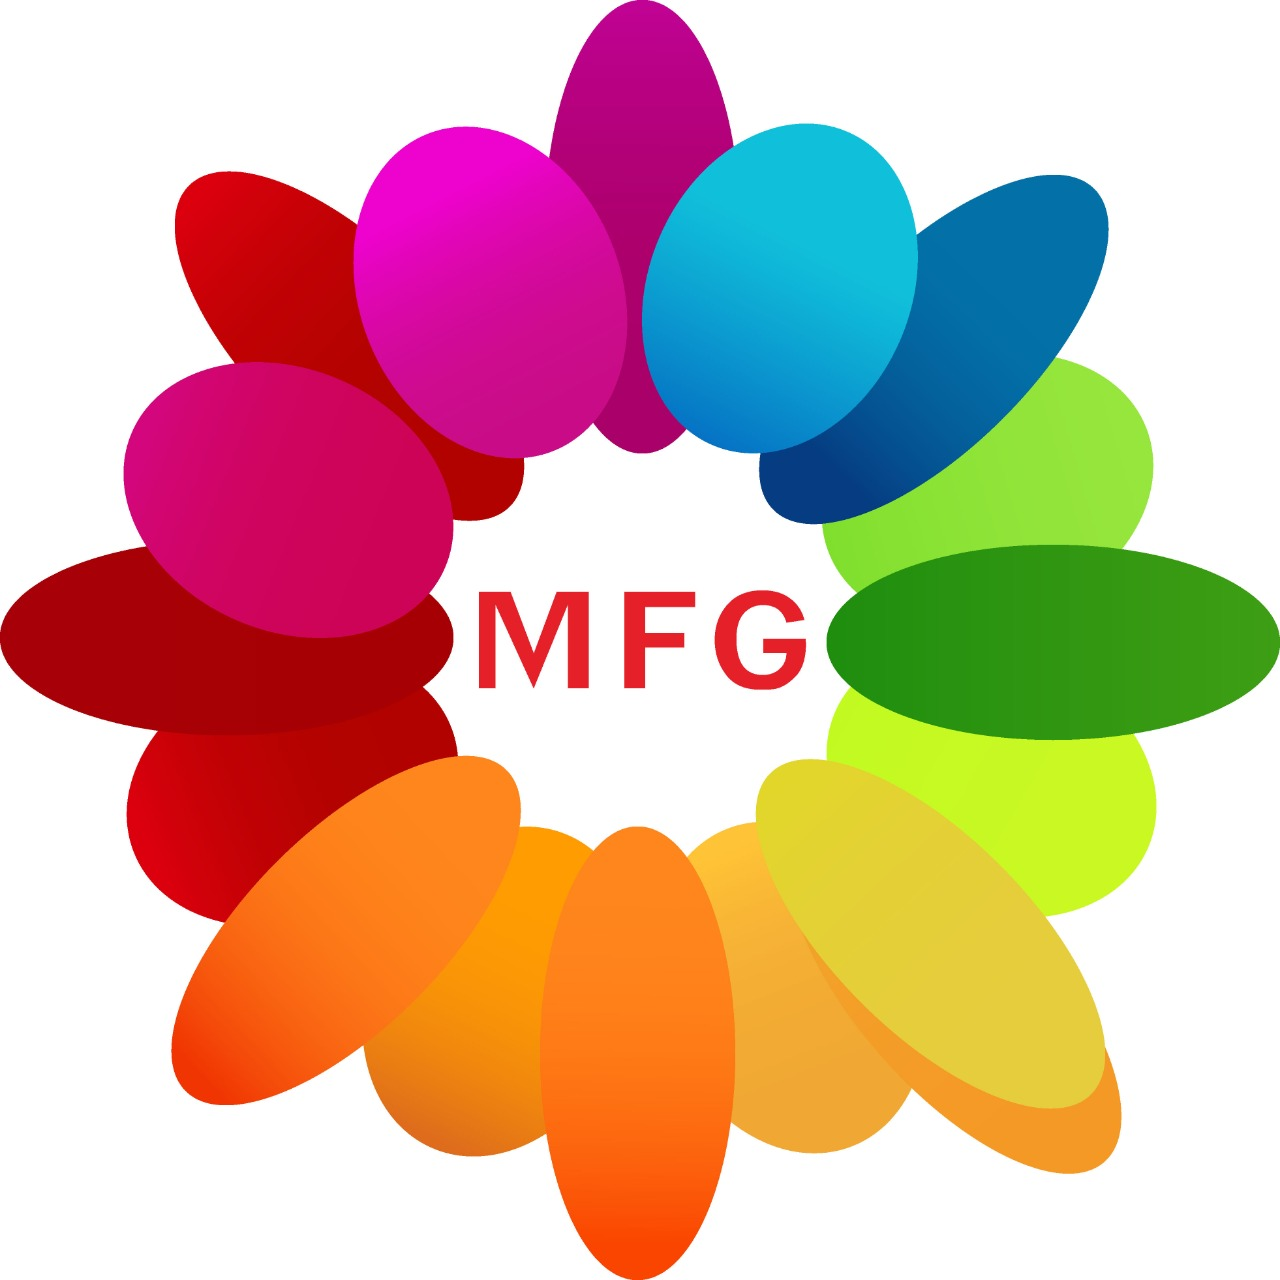 1 kg heart shape butterscotch premium quality fresh cream cake with basket of assorted chocolates with 1 feet height teddybear